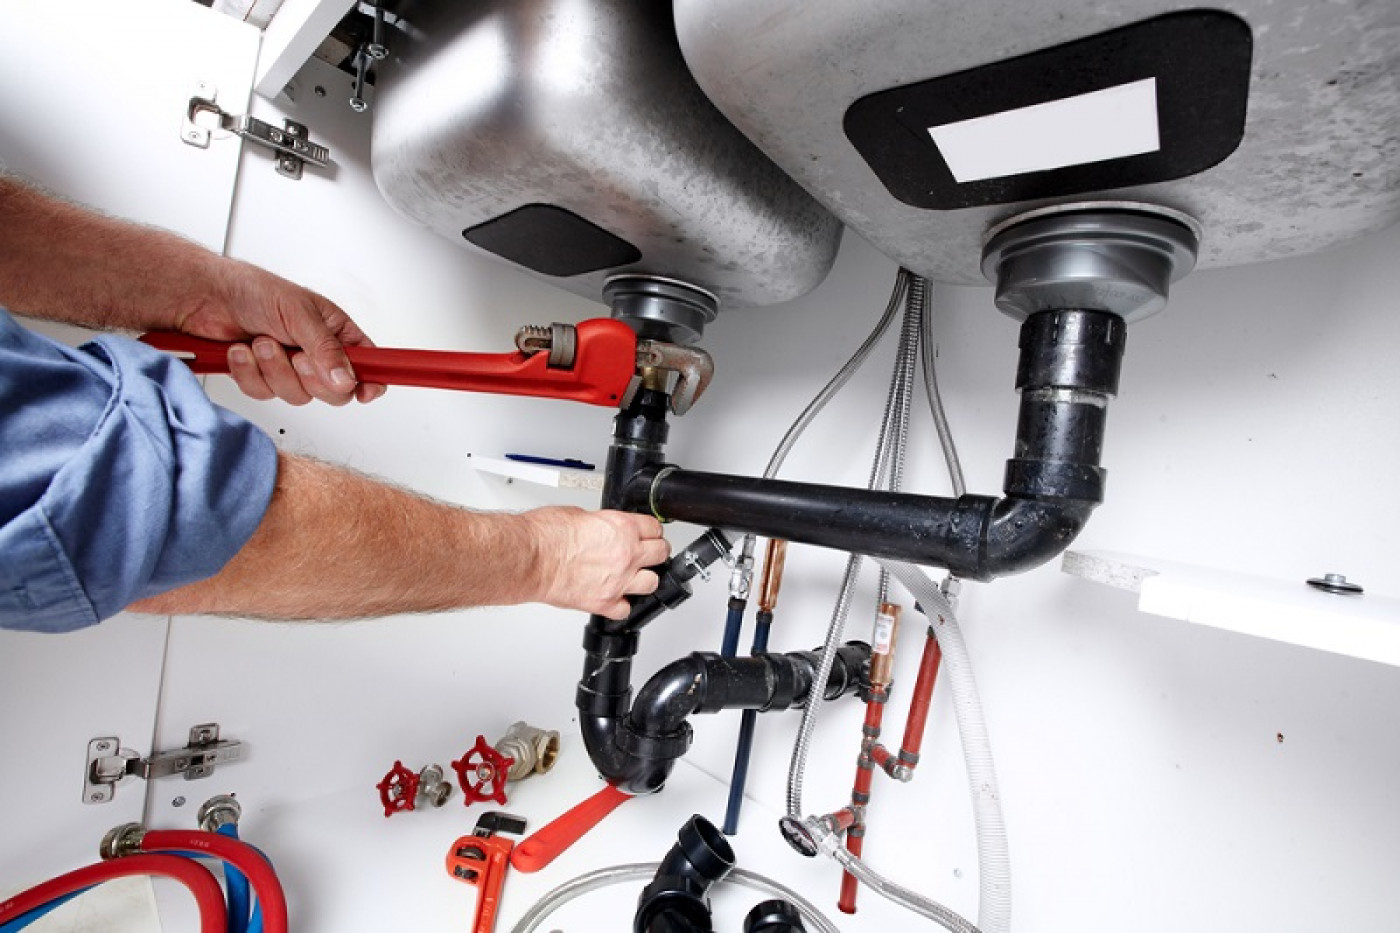 Where to Find Superior Plumbing Services in Atlanta